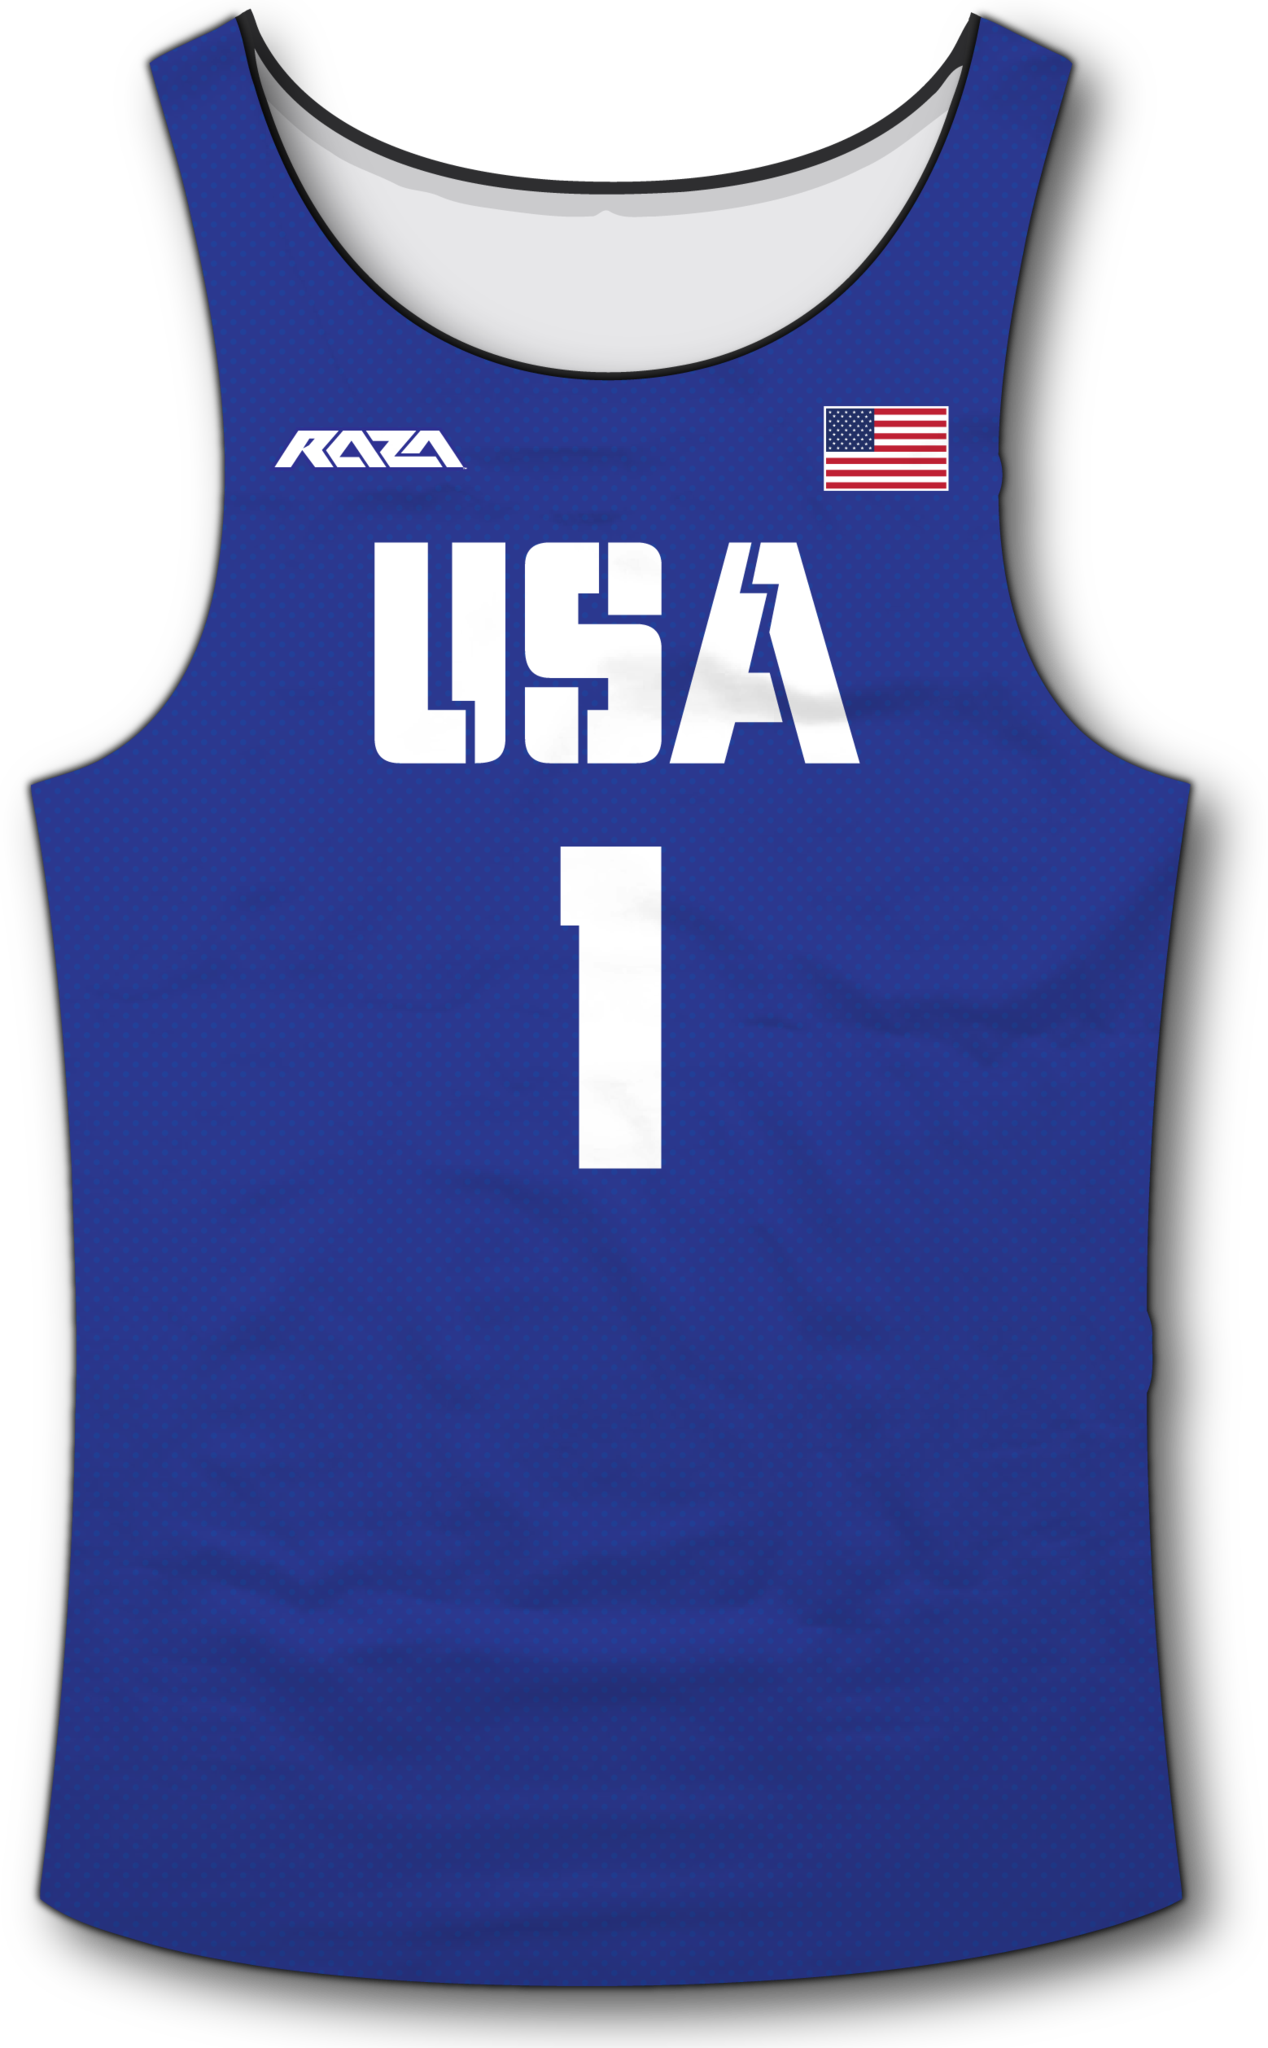 USA Blue Tank Top